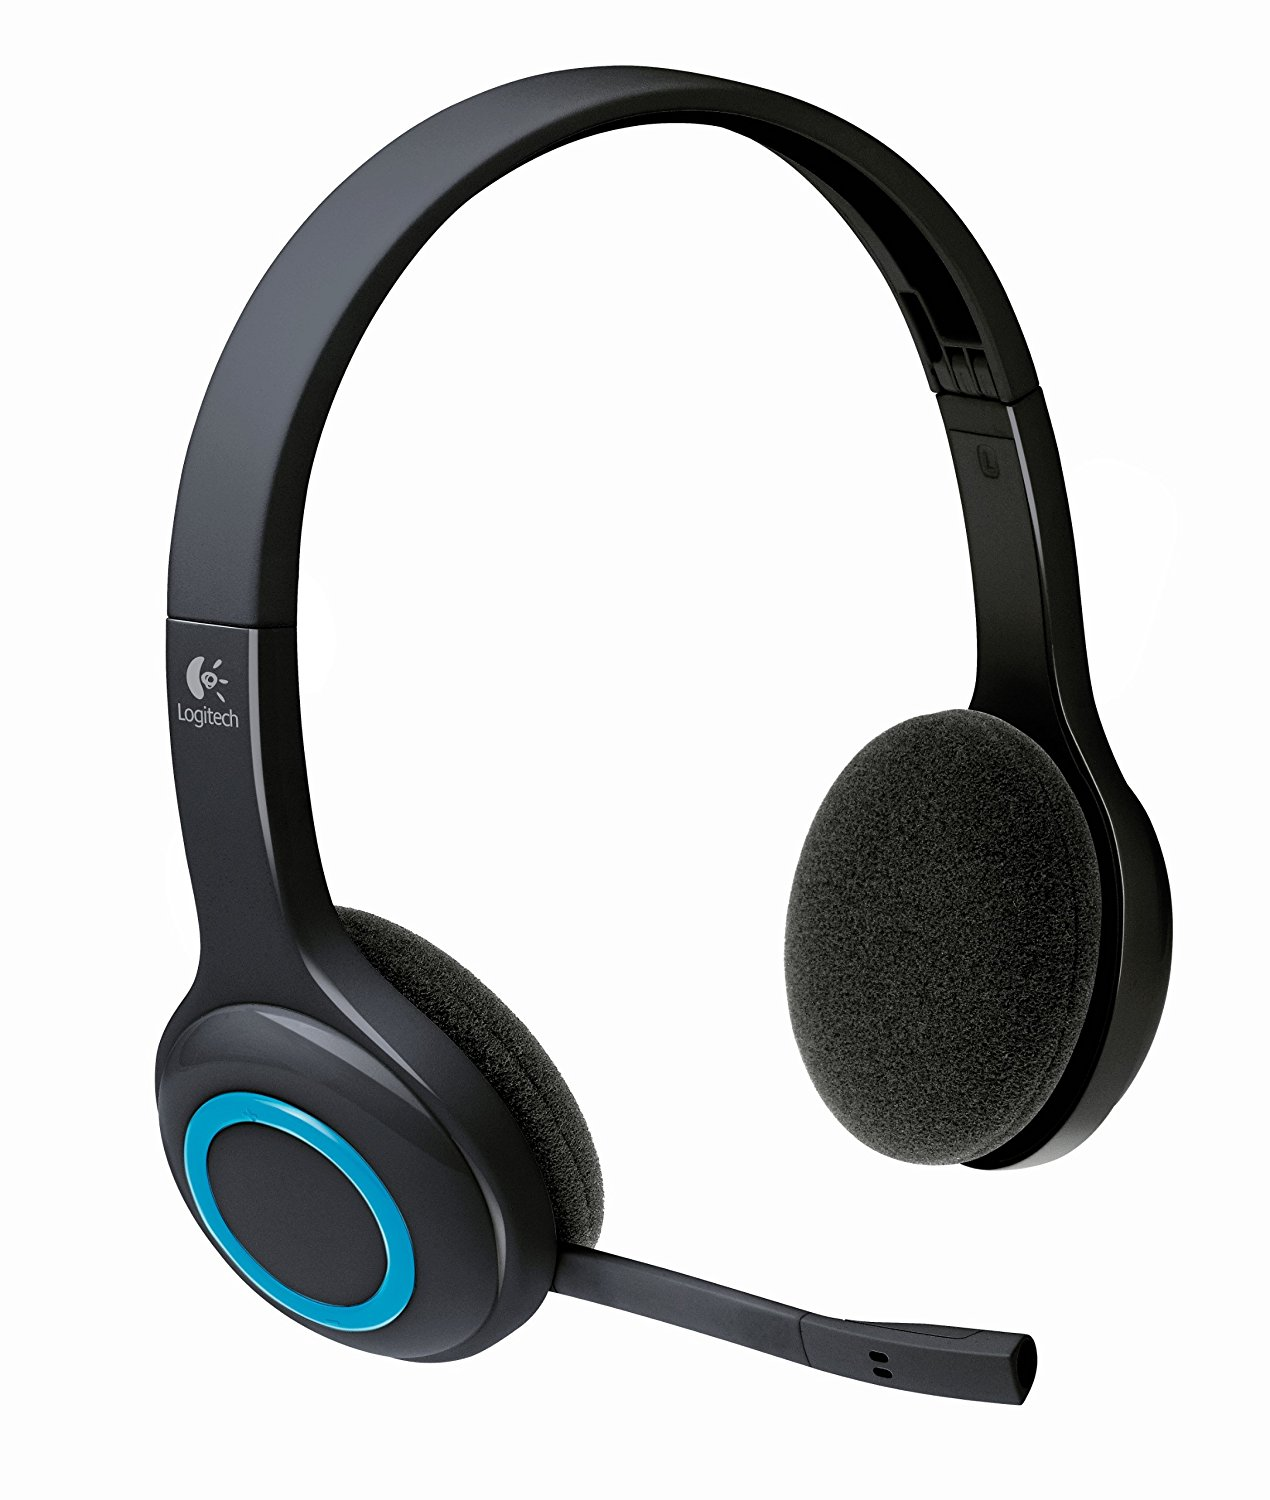 Logitech Over The Head Wireless Headset H600